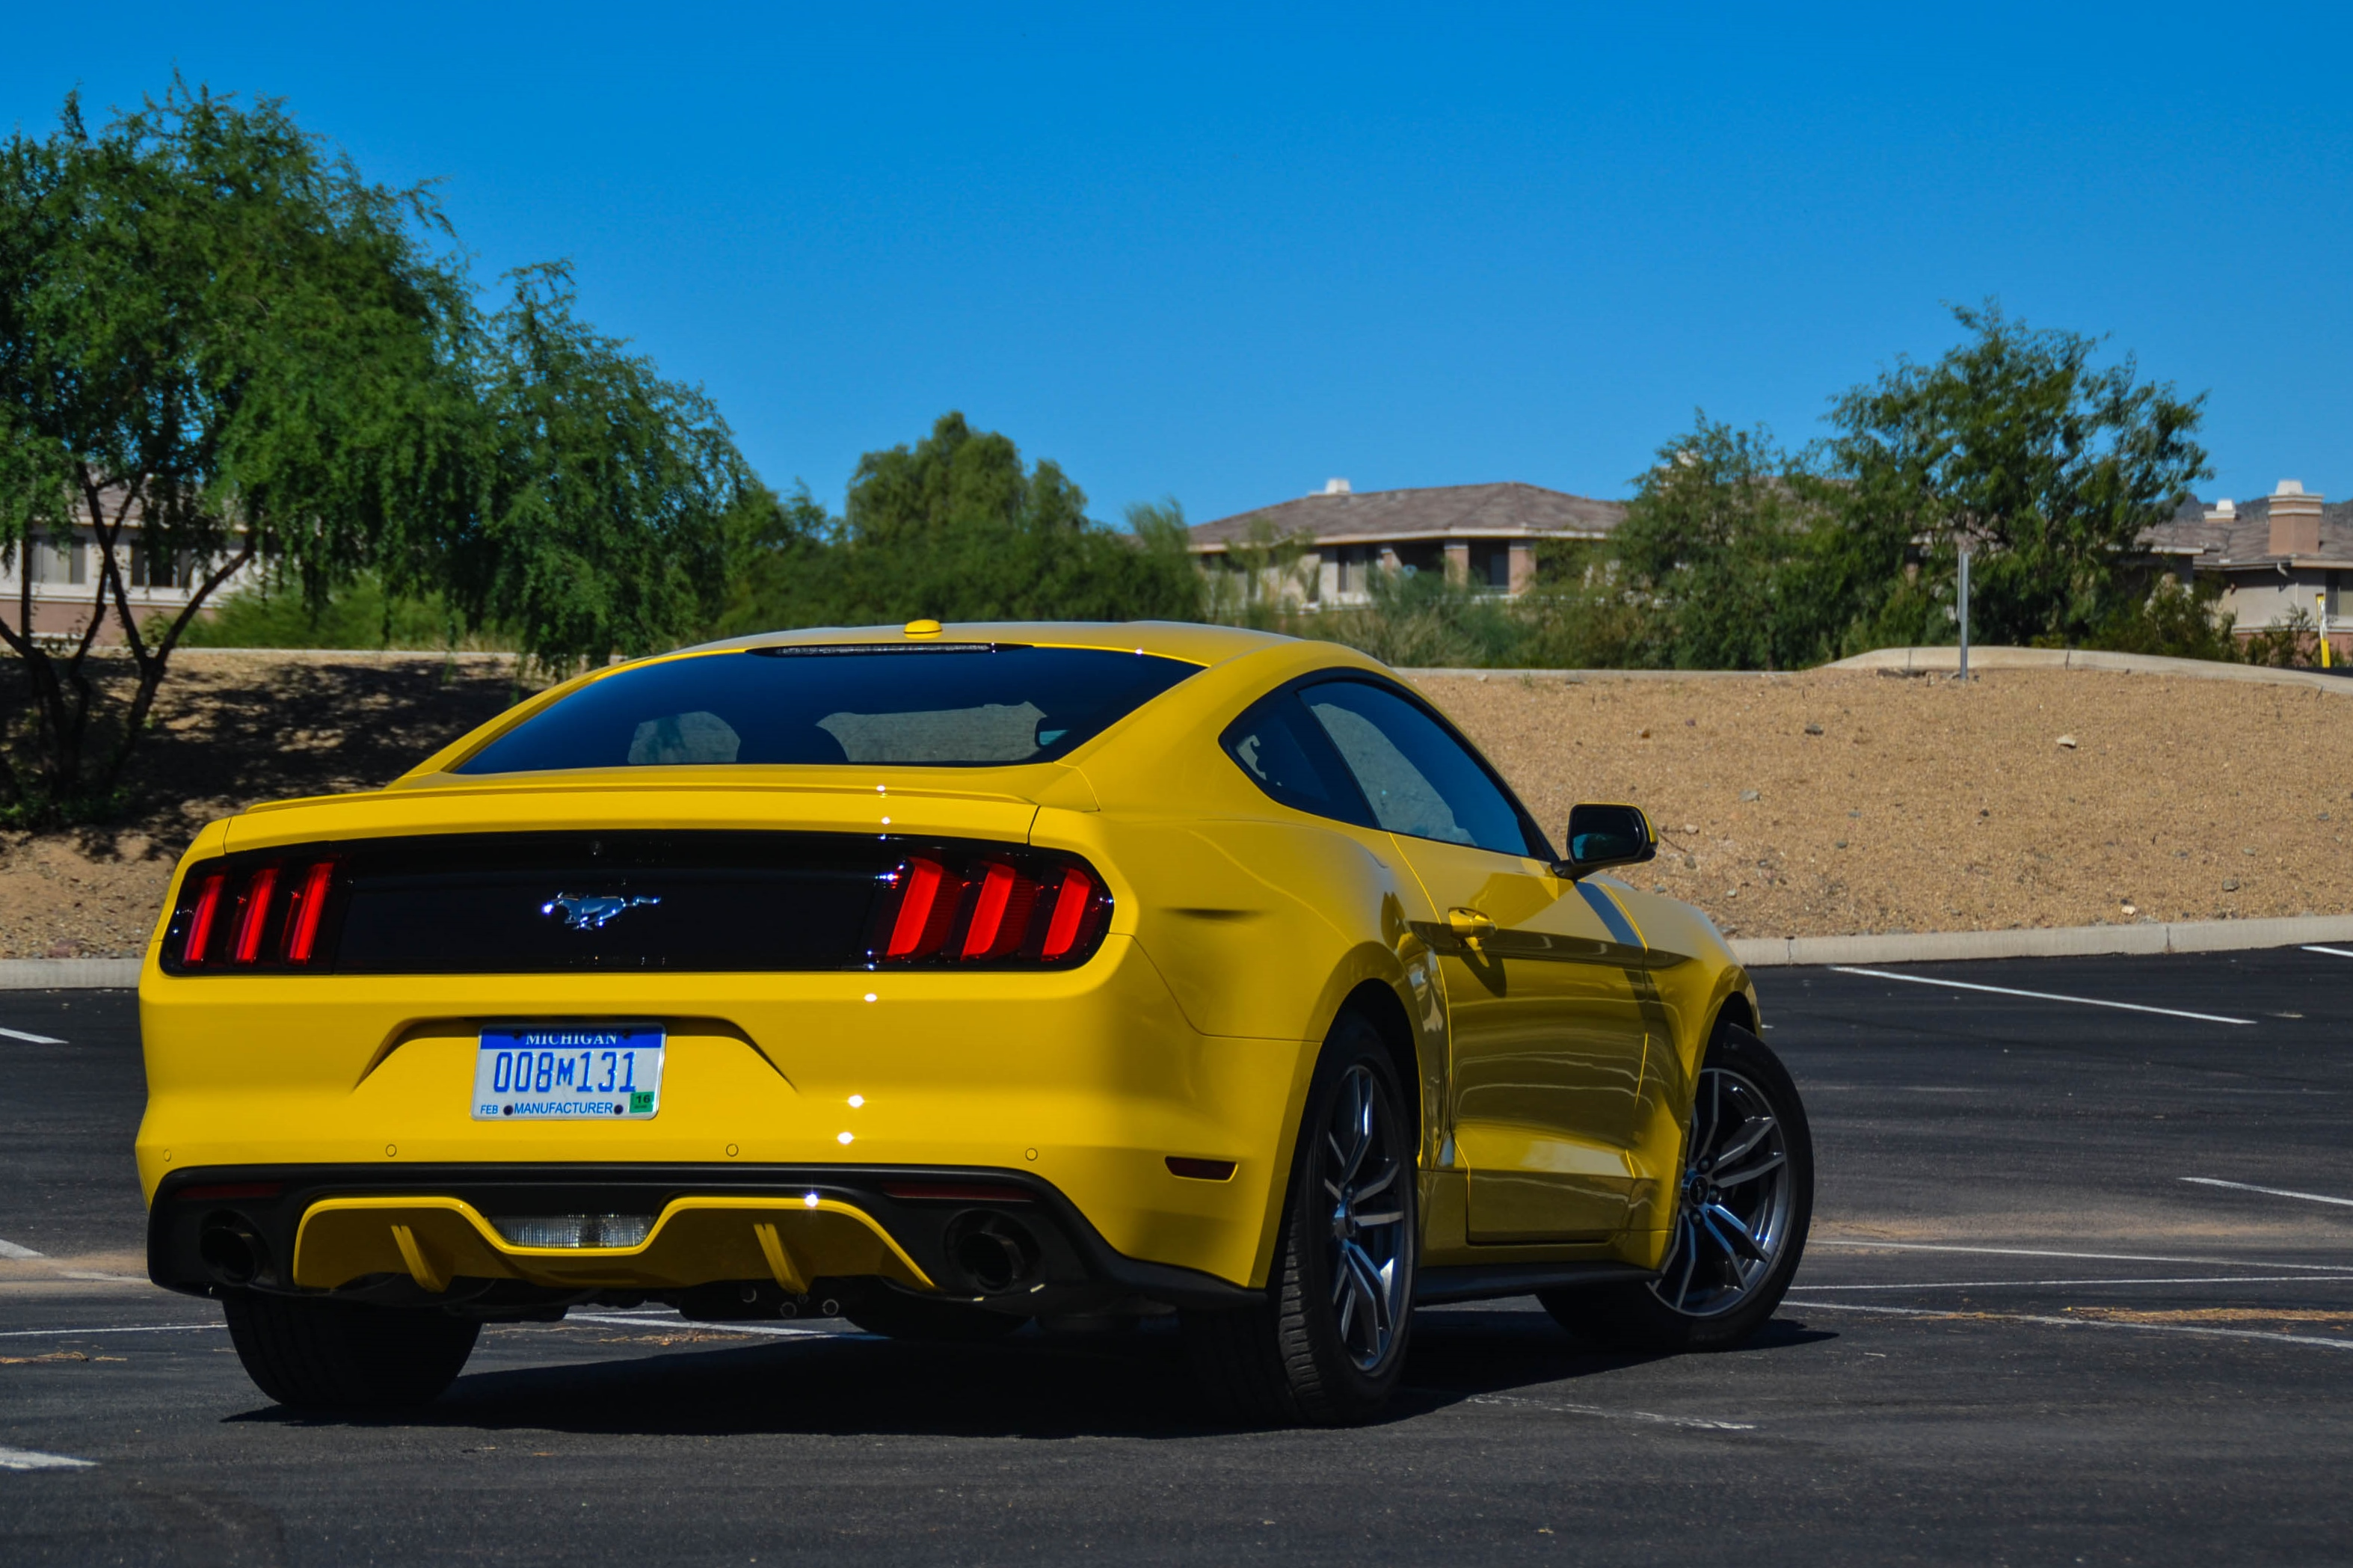 Ford Mustang Reviews | Ford Mustang Price, Photos, and ...